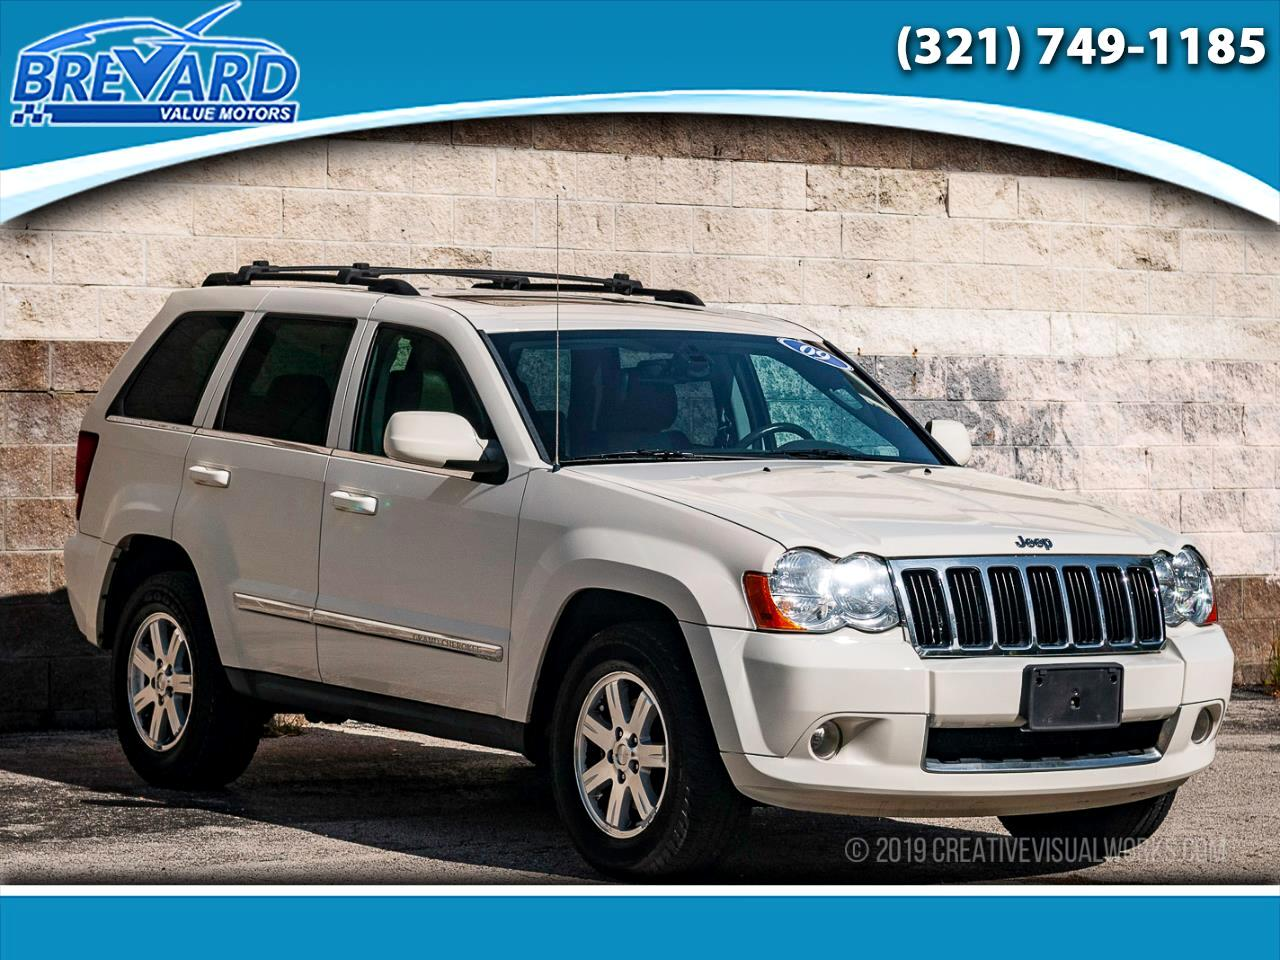 Jeep Grand Cherokee Limited 4WD 2009